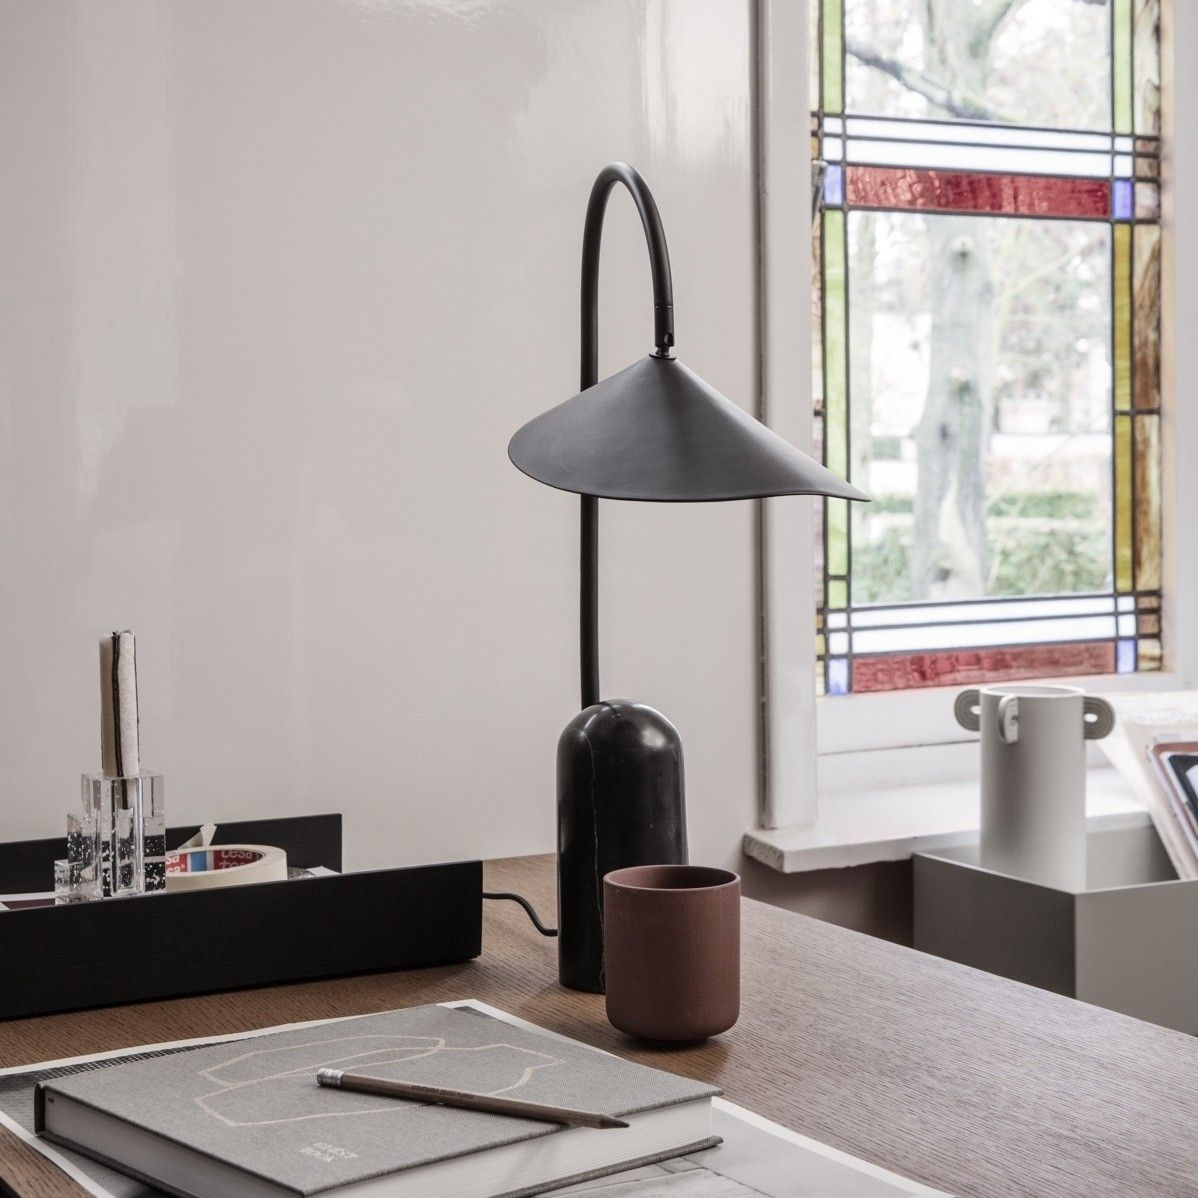 Ferm Living Arum Table Lamp in black on a walnut desk